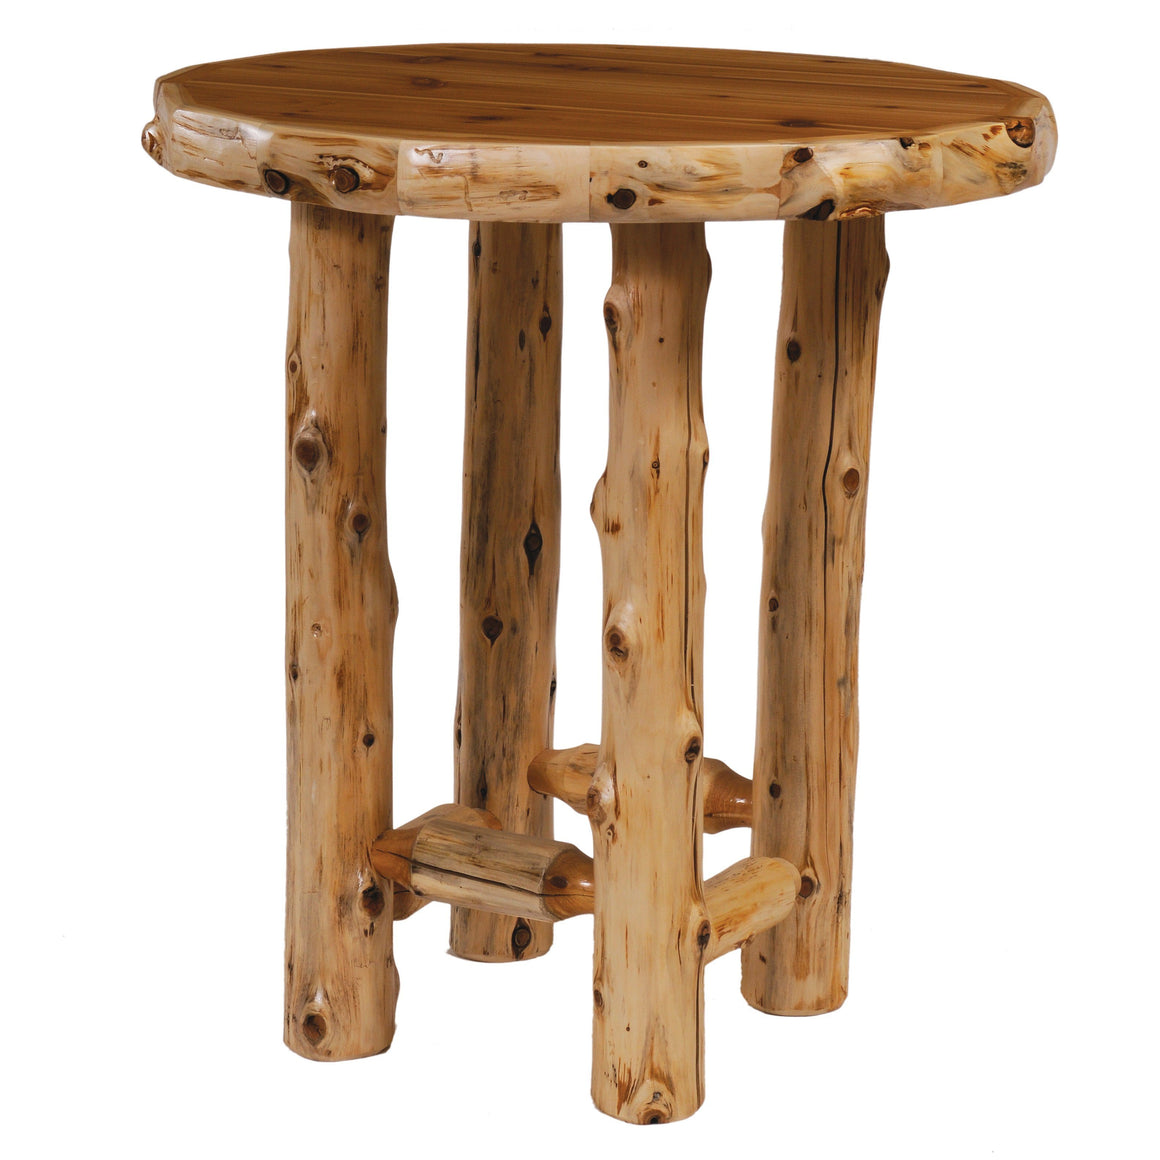 Natural Cedar Log Round Pub Table 32-36-40 Inch-Rustic Deco Incorporated